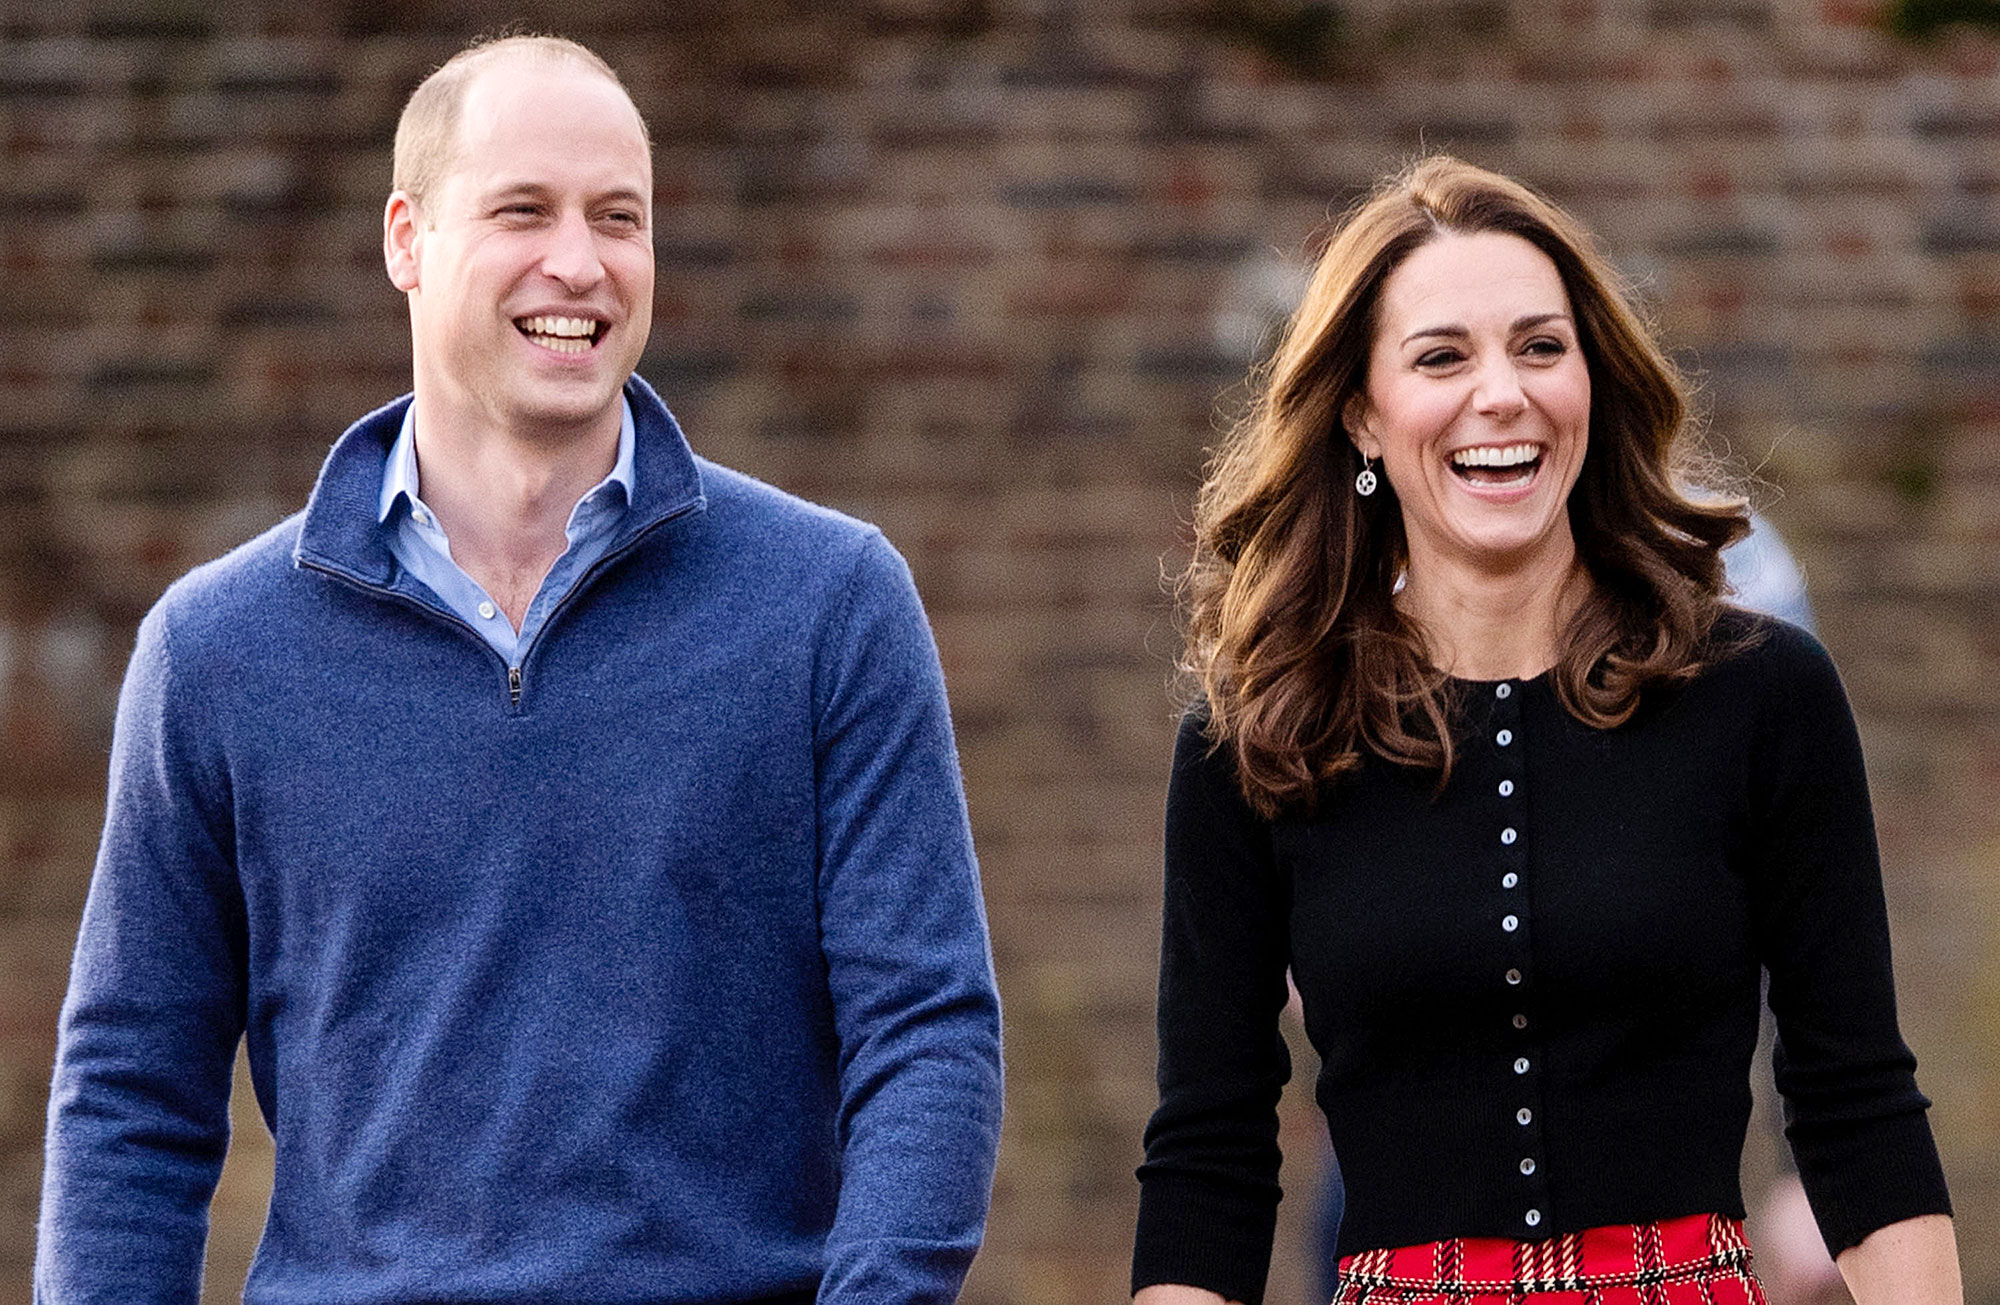 Prince William Duchess Kate Princess Charlotte Nickname - Prince William and Duchess Kate attend a Christmas Party for families and children of deployed personnel from RAF Coningsby and RAF Marham serving in Cyprus, at Kensington Palace in London on December 4, 2018.